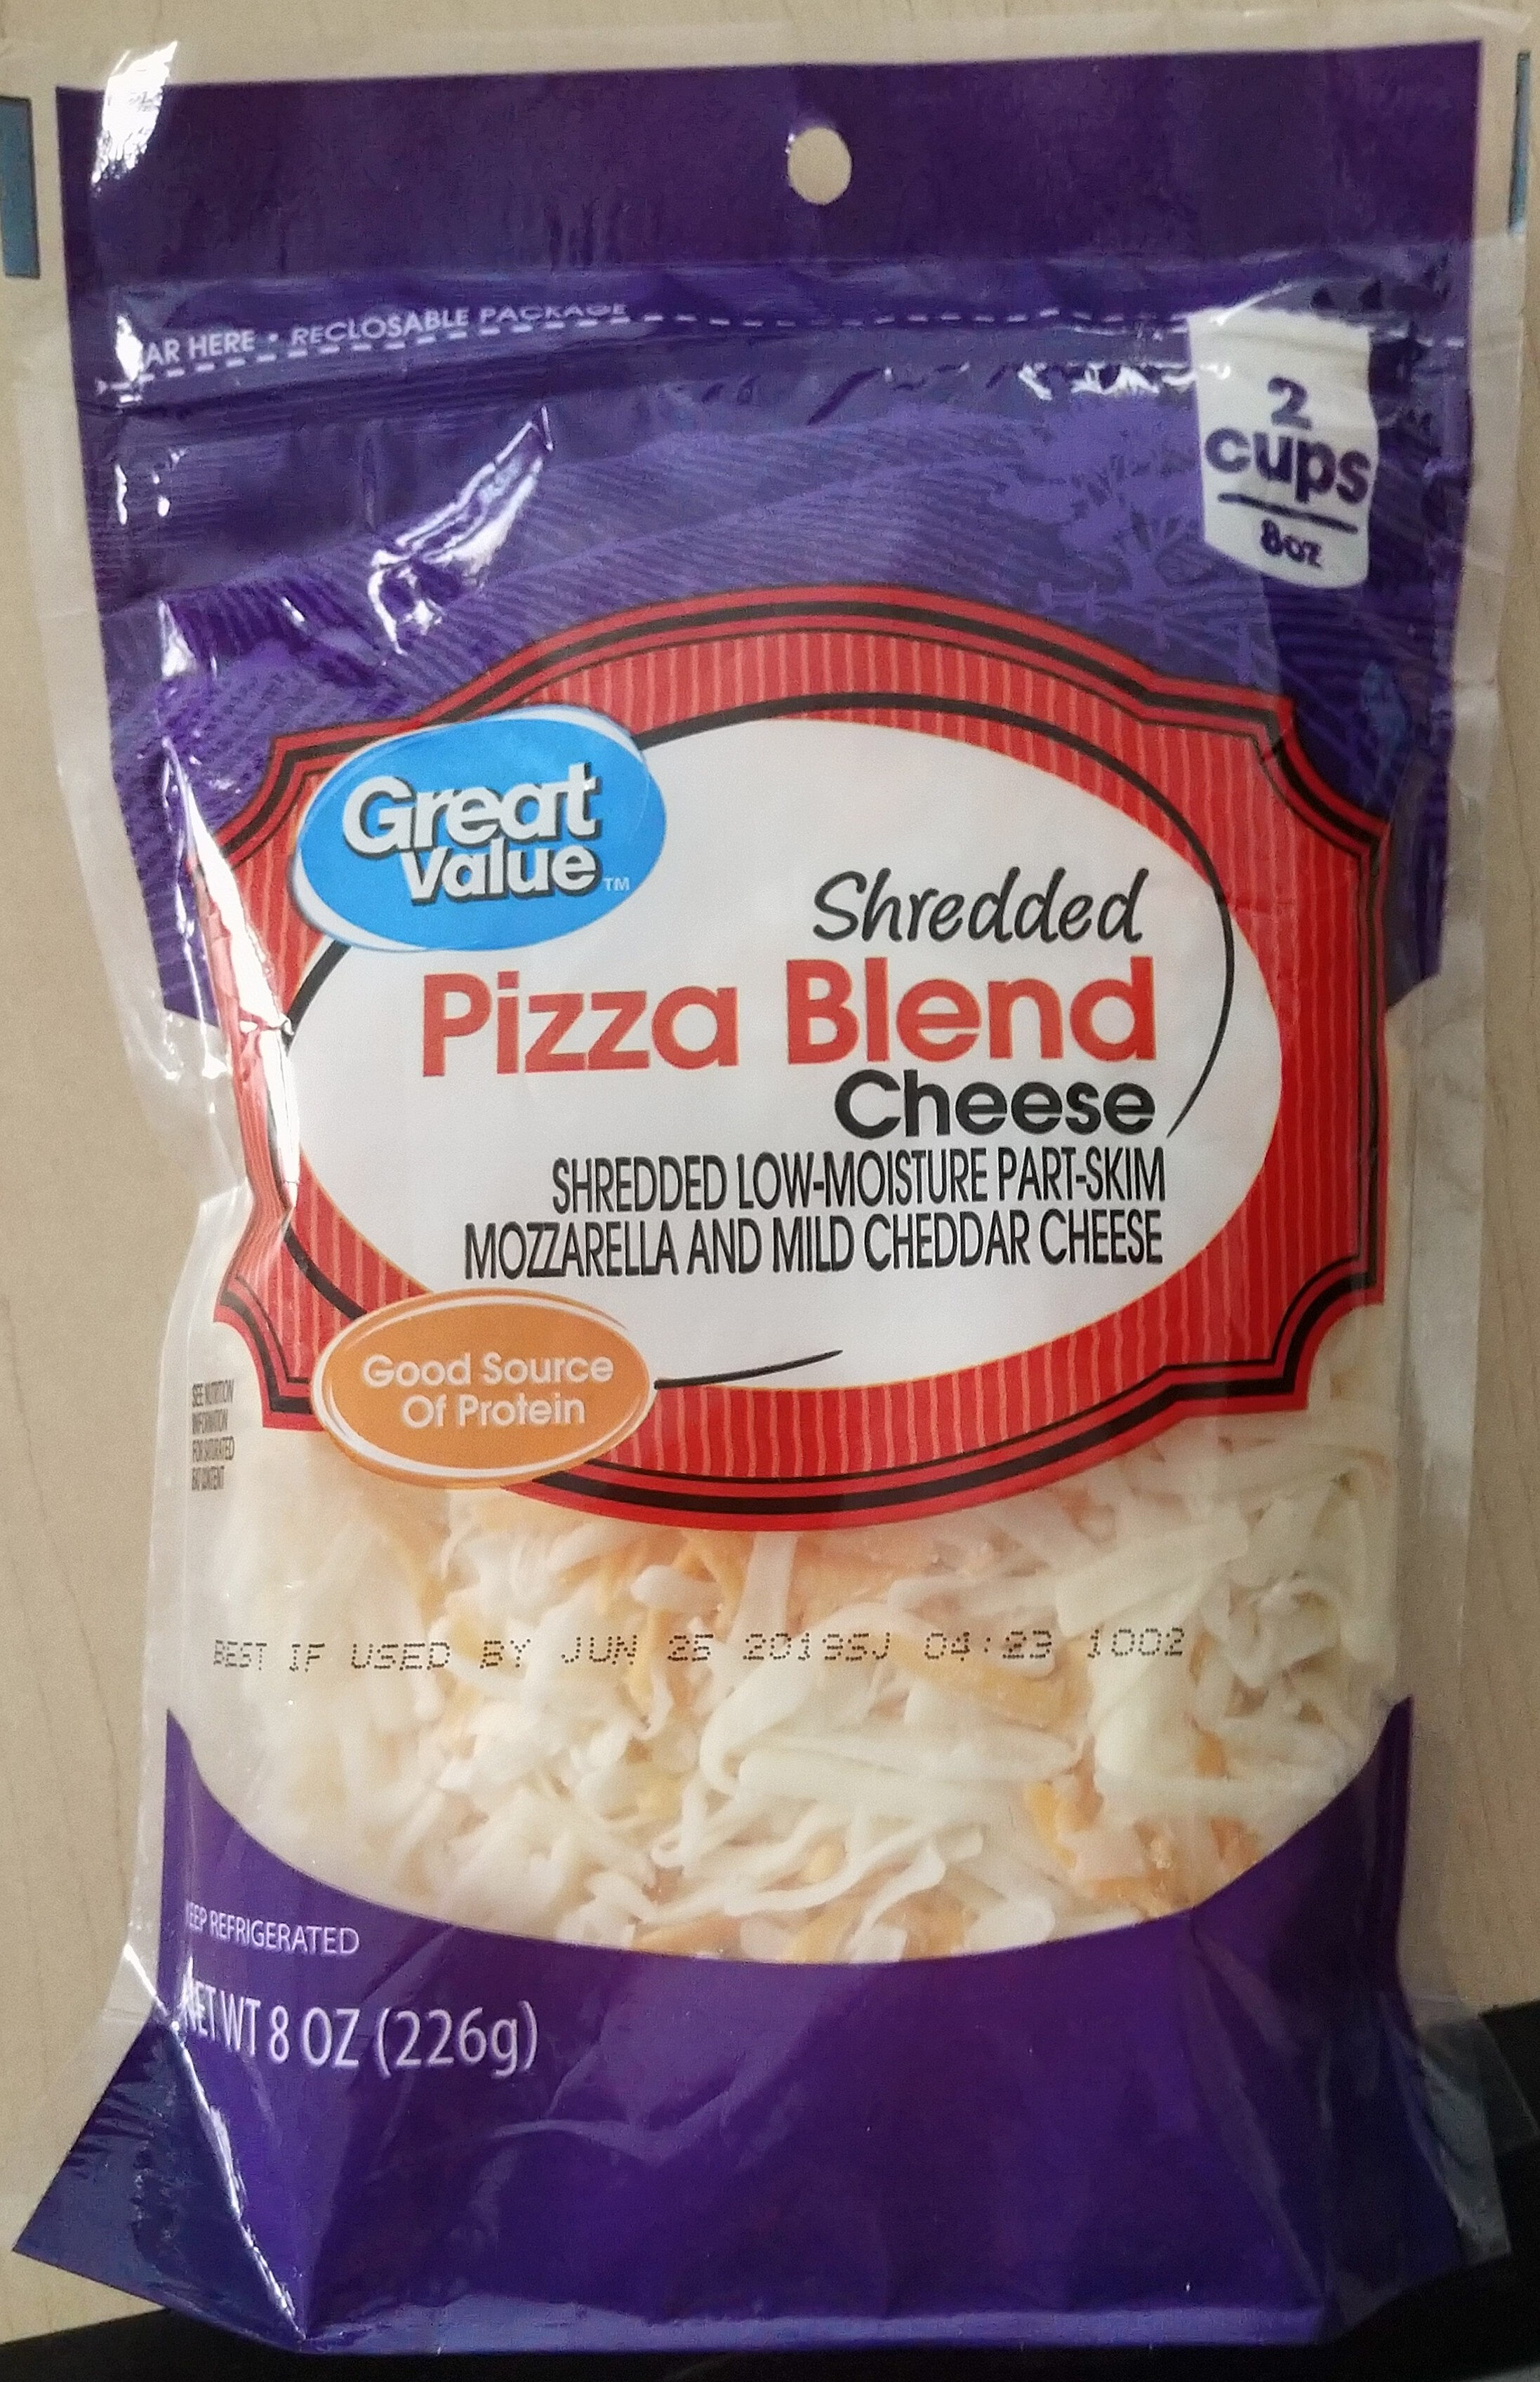 Great value, shredded pizza blend cheese - Product - en